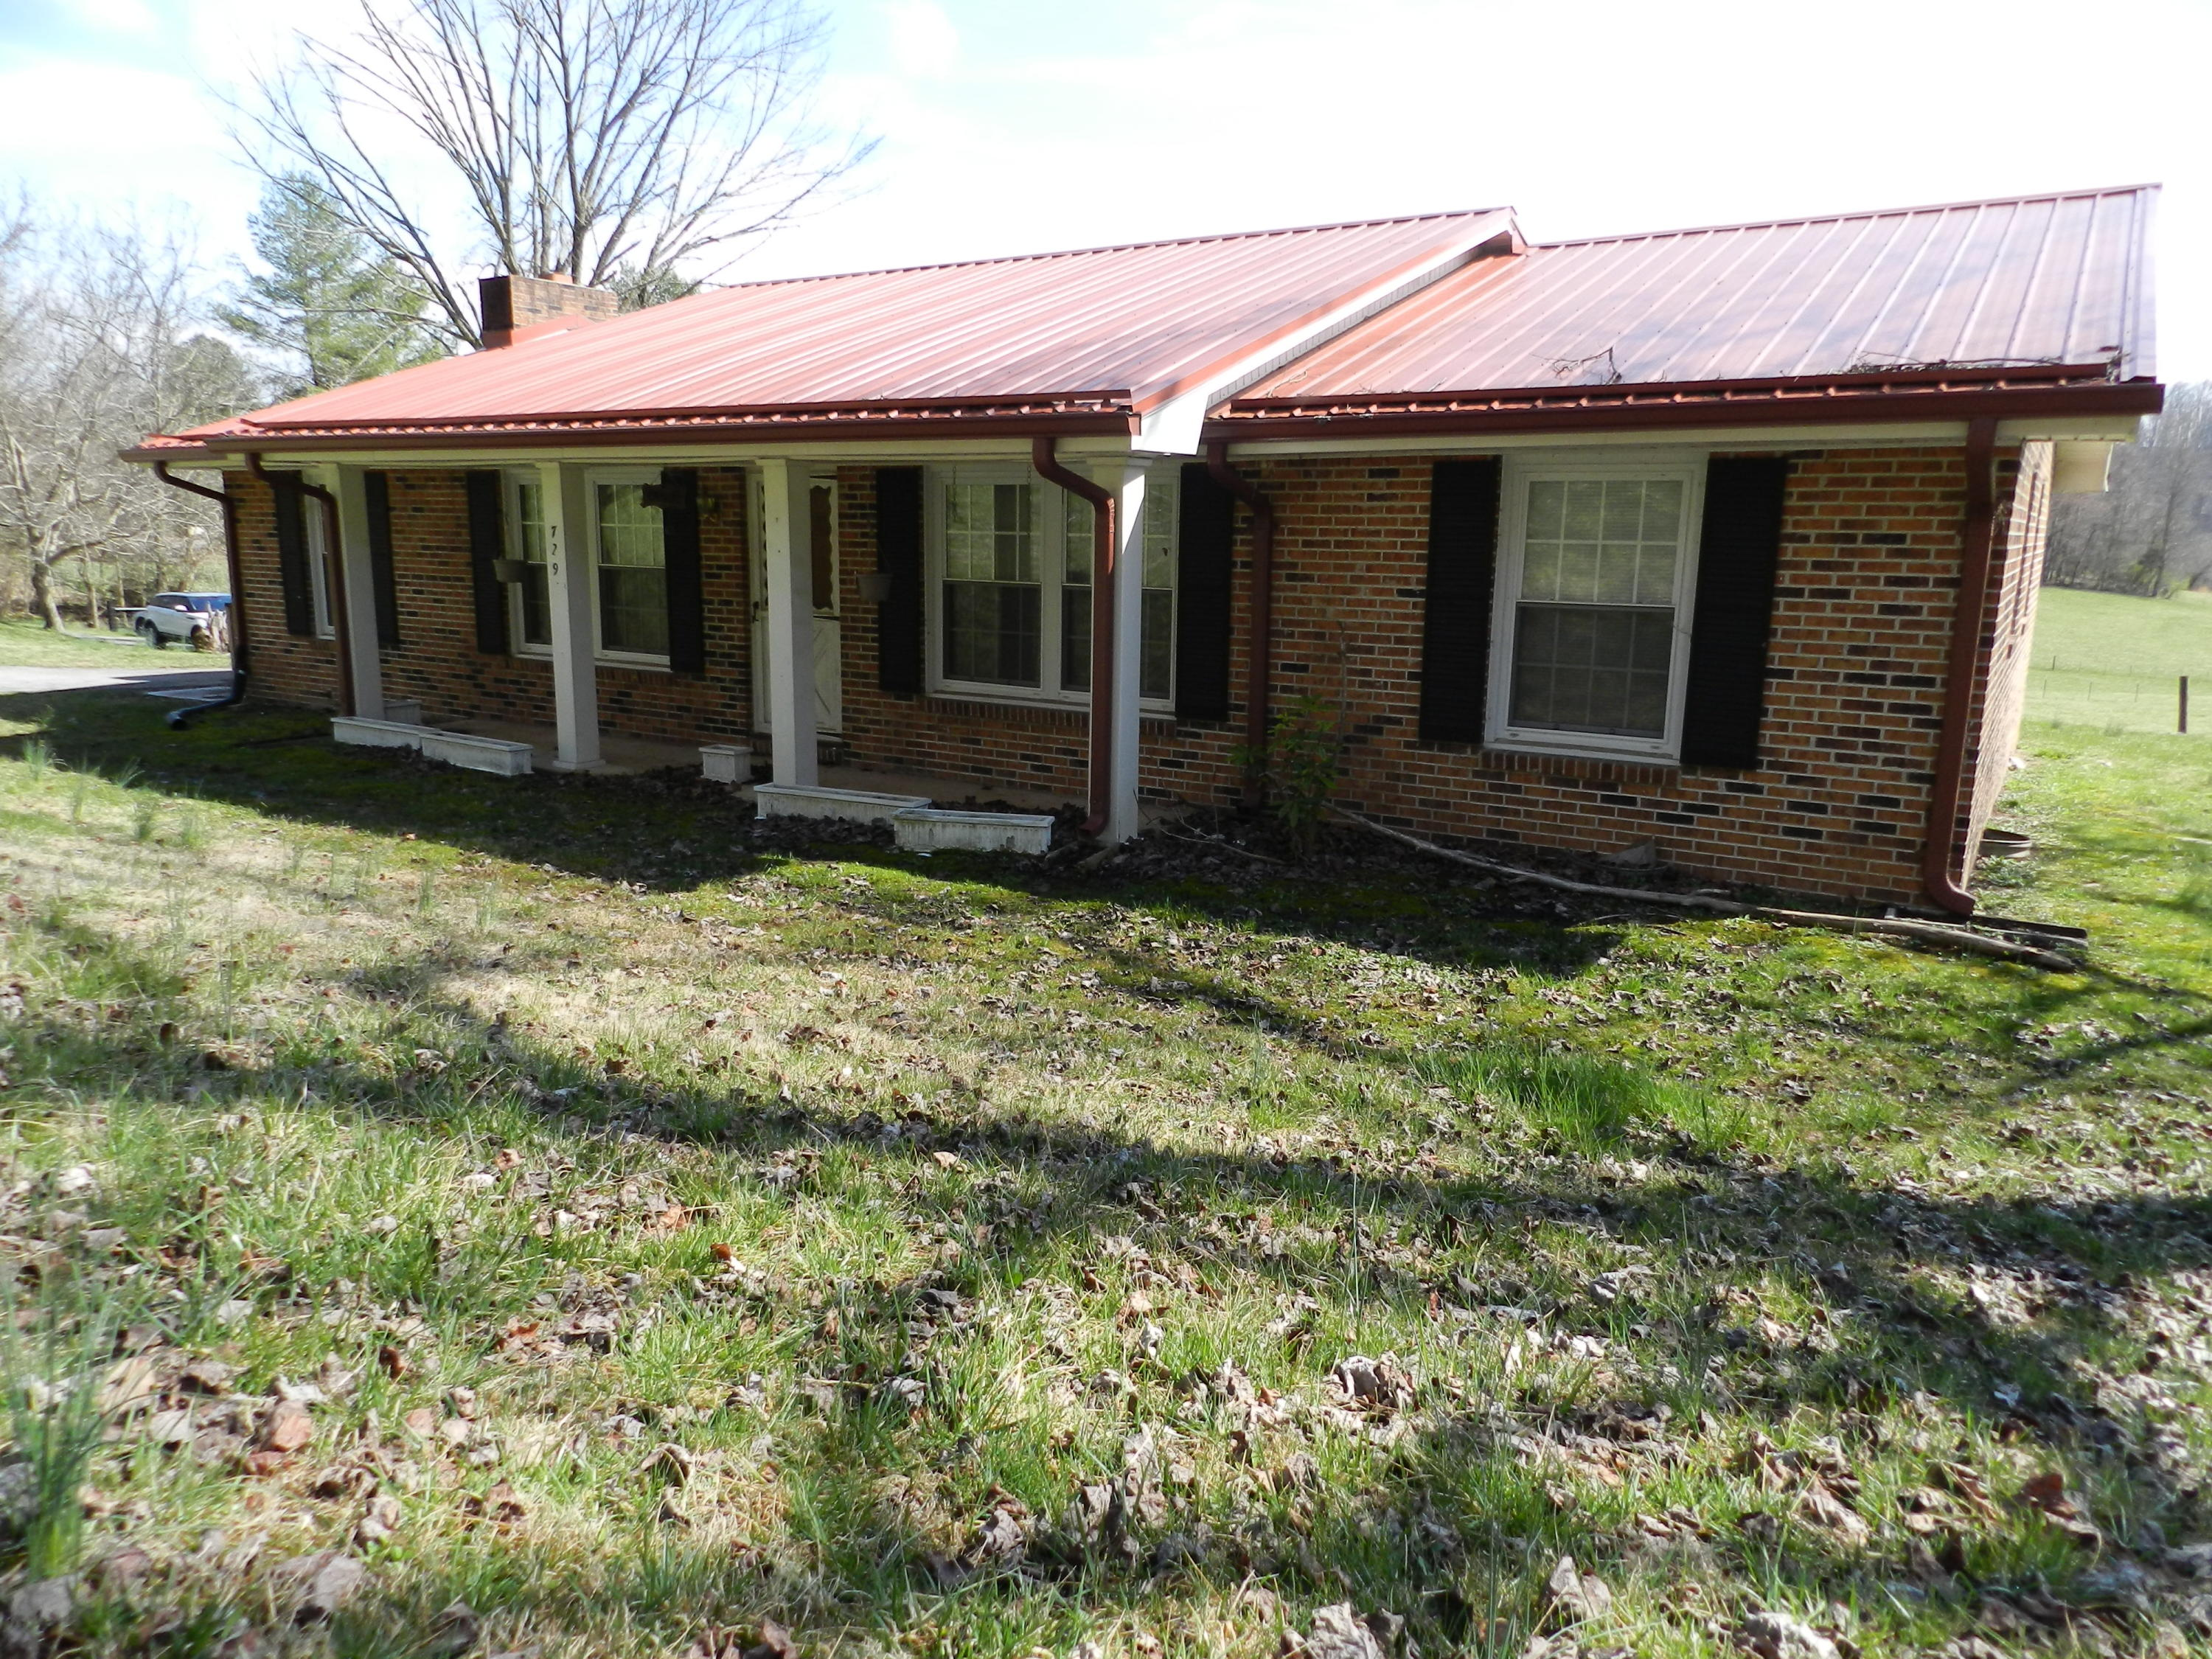 729 Bluff Road, Kingsport, Tennessee 37664, 3 Bedrooms Bedrooms, ,2 BathroomsBathrooms,Single Family,For Sale,729 Bluff Road,9920521